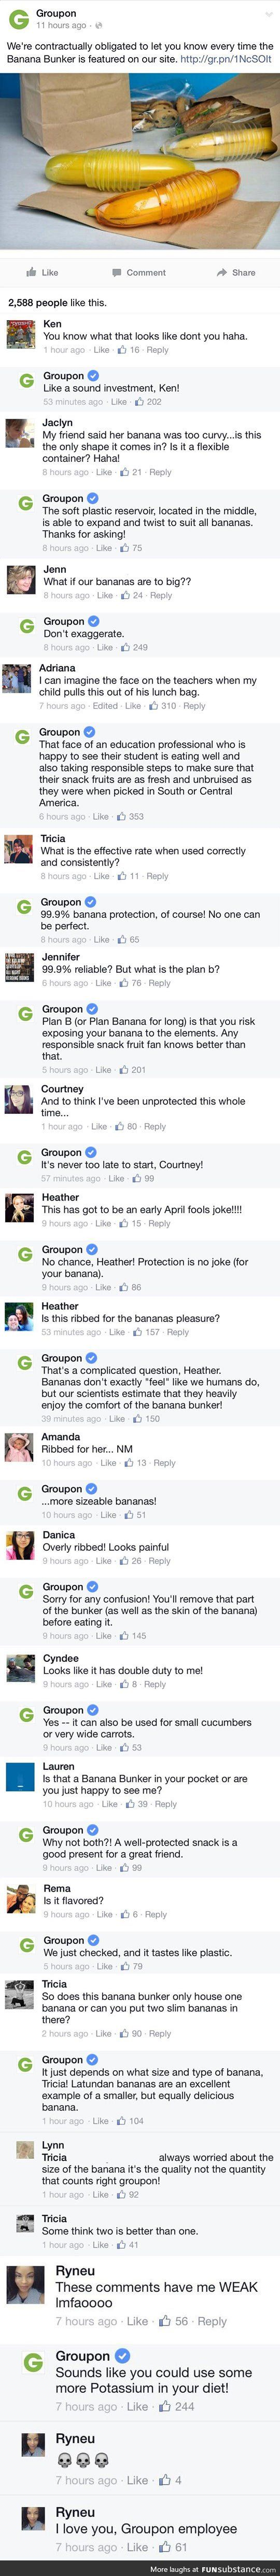 Groupon employee ftw